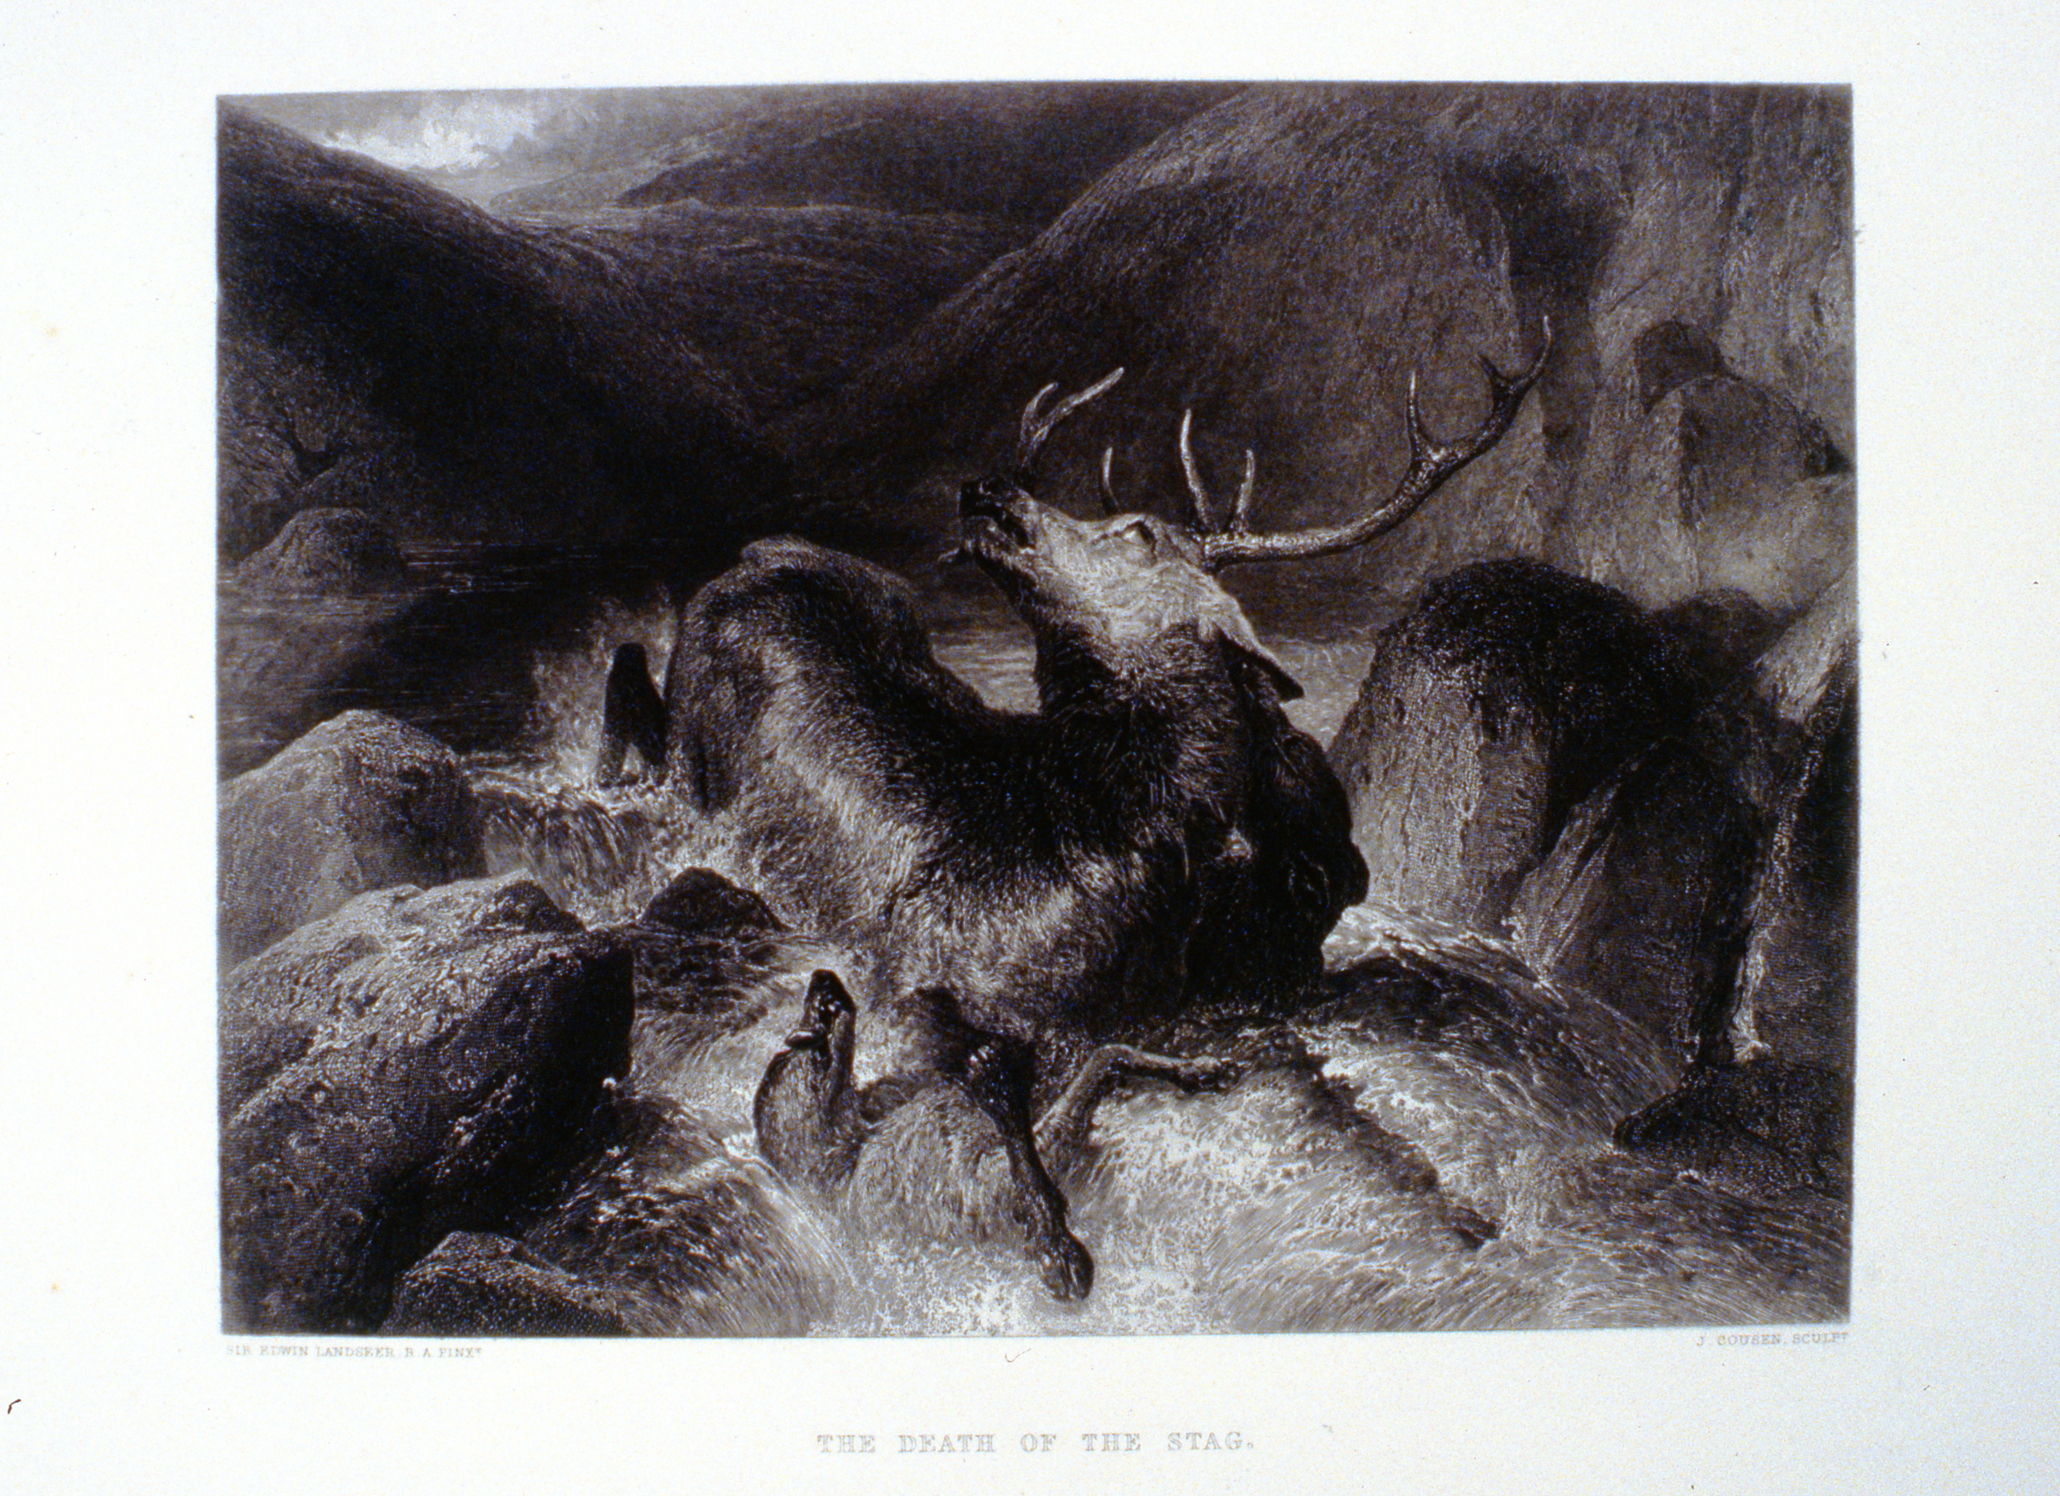 The Death of the Stag , c. late 19th Century, J. Cousen, steel engraving, 18.6 cm x 24.6 cm, 1996.08.41, gift of Yvonne Adams